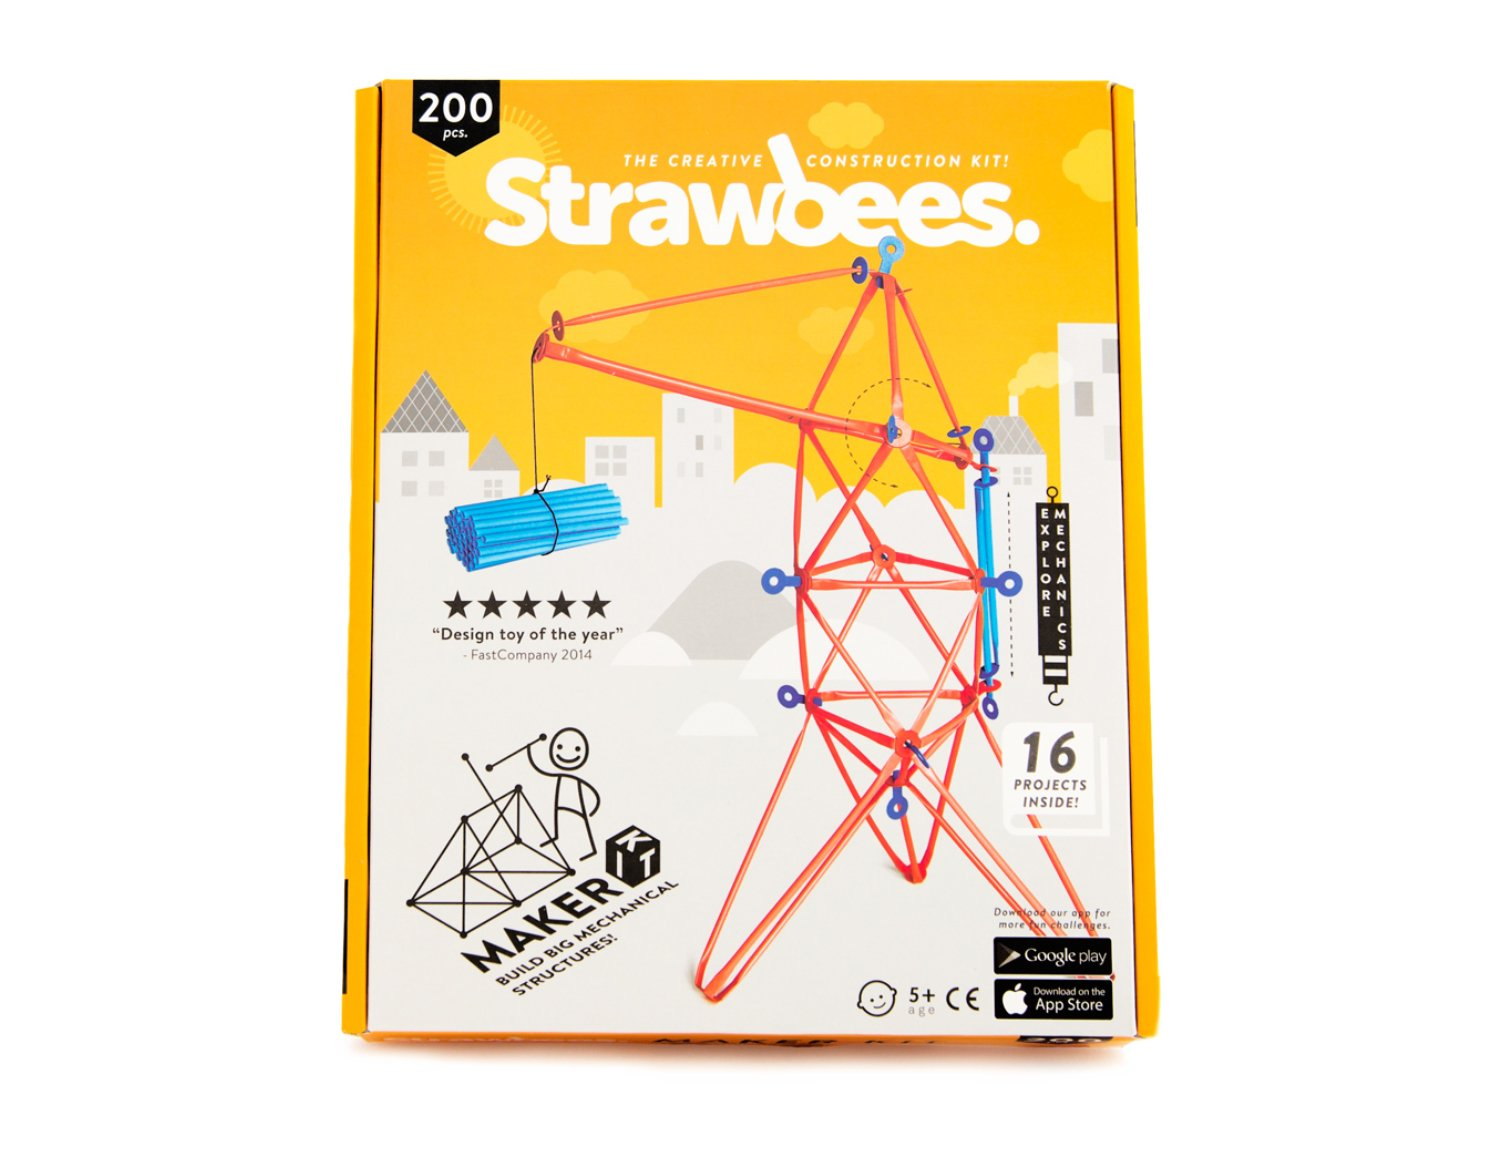 Strawbees Maker Builder Kit - 100 Straws and 100 Connectors Set, Educational & Creative Building Toy, Tinkering & STEM Learning, Suitable for Children 5 Years & Up Review